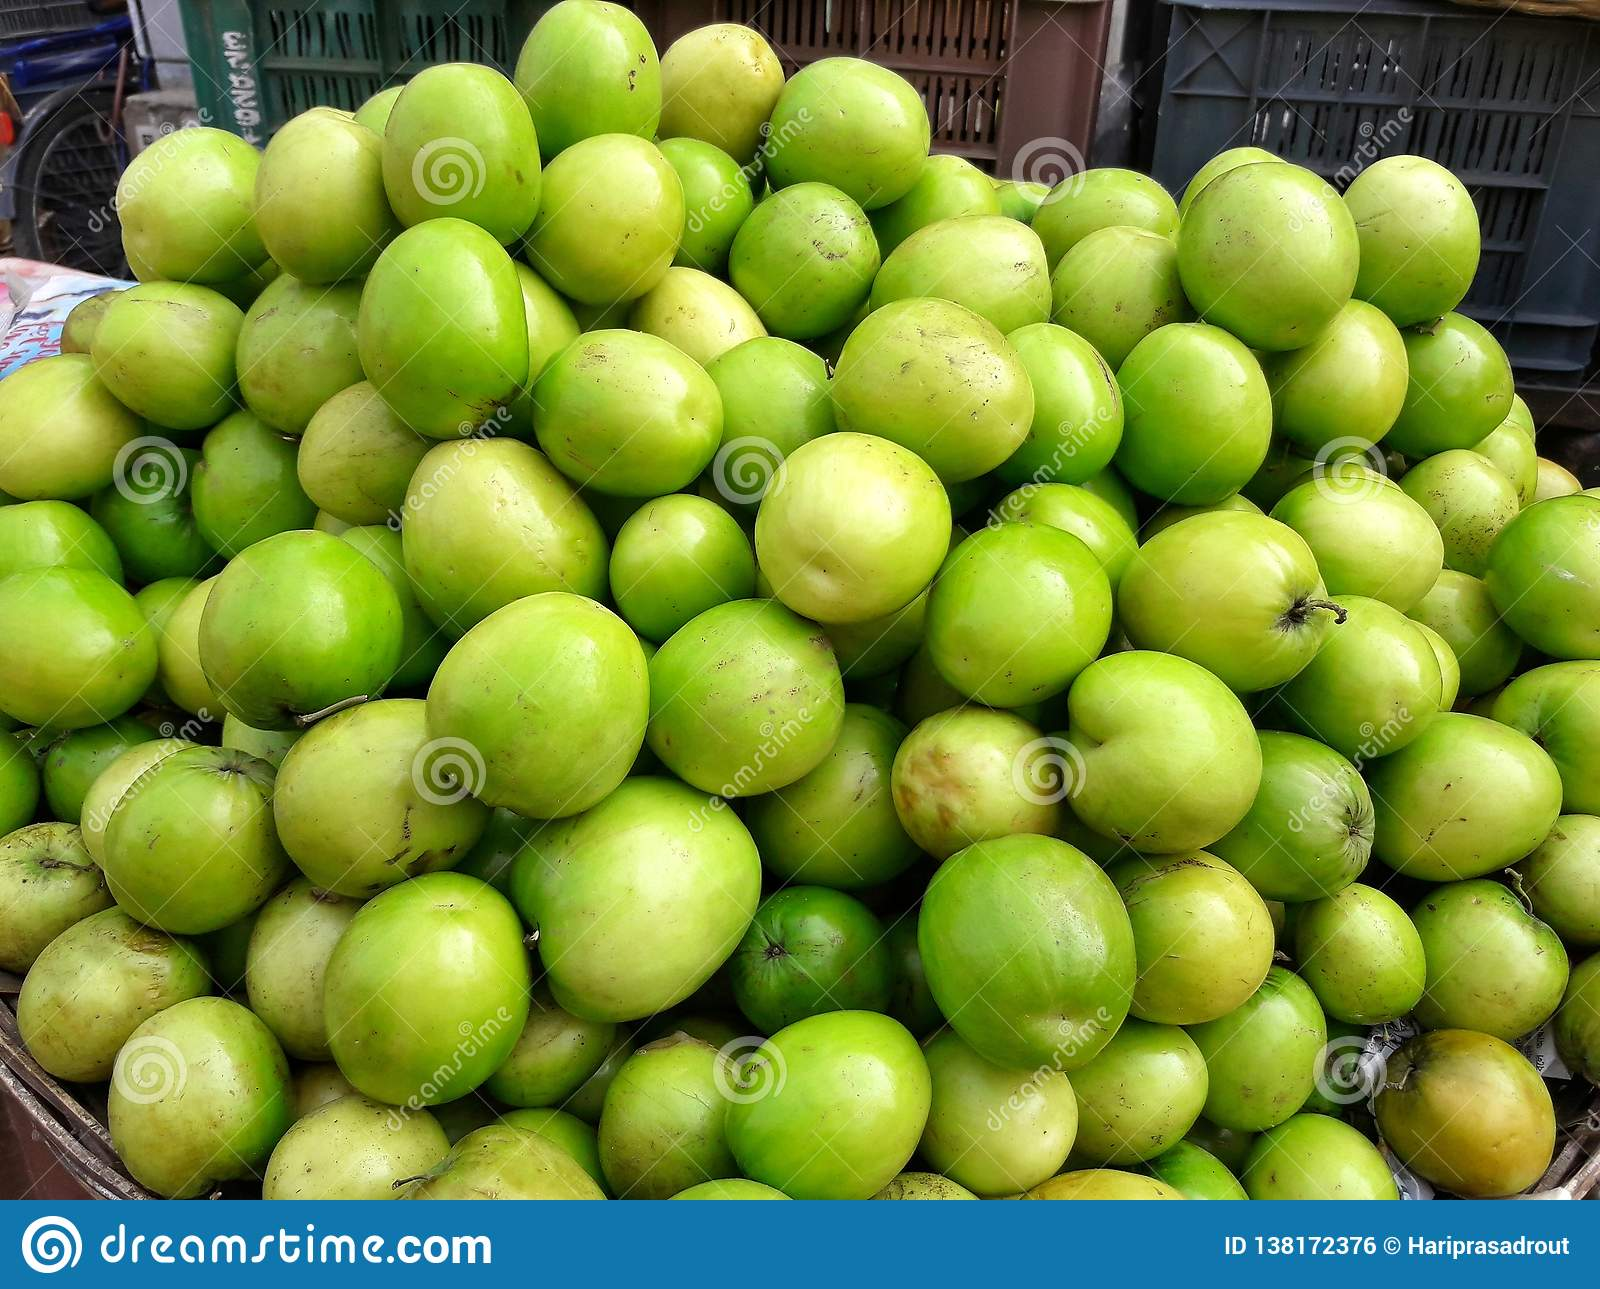 Greengage Fruits in market for sale.